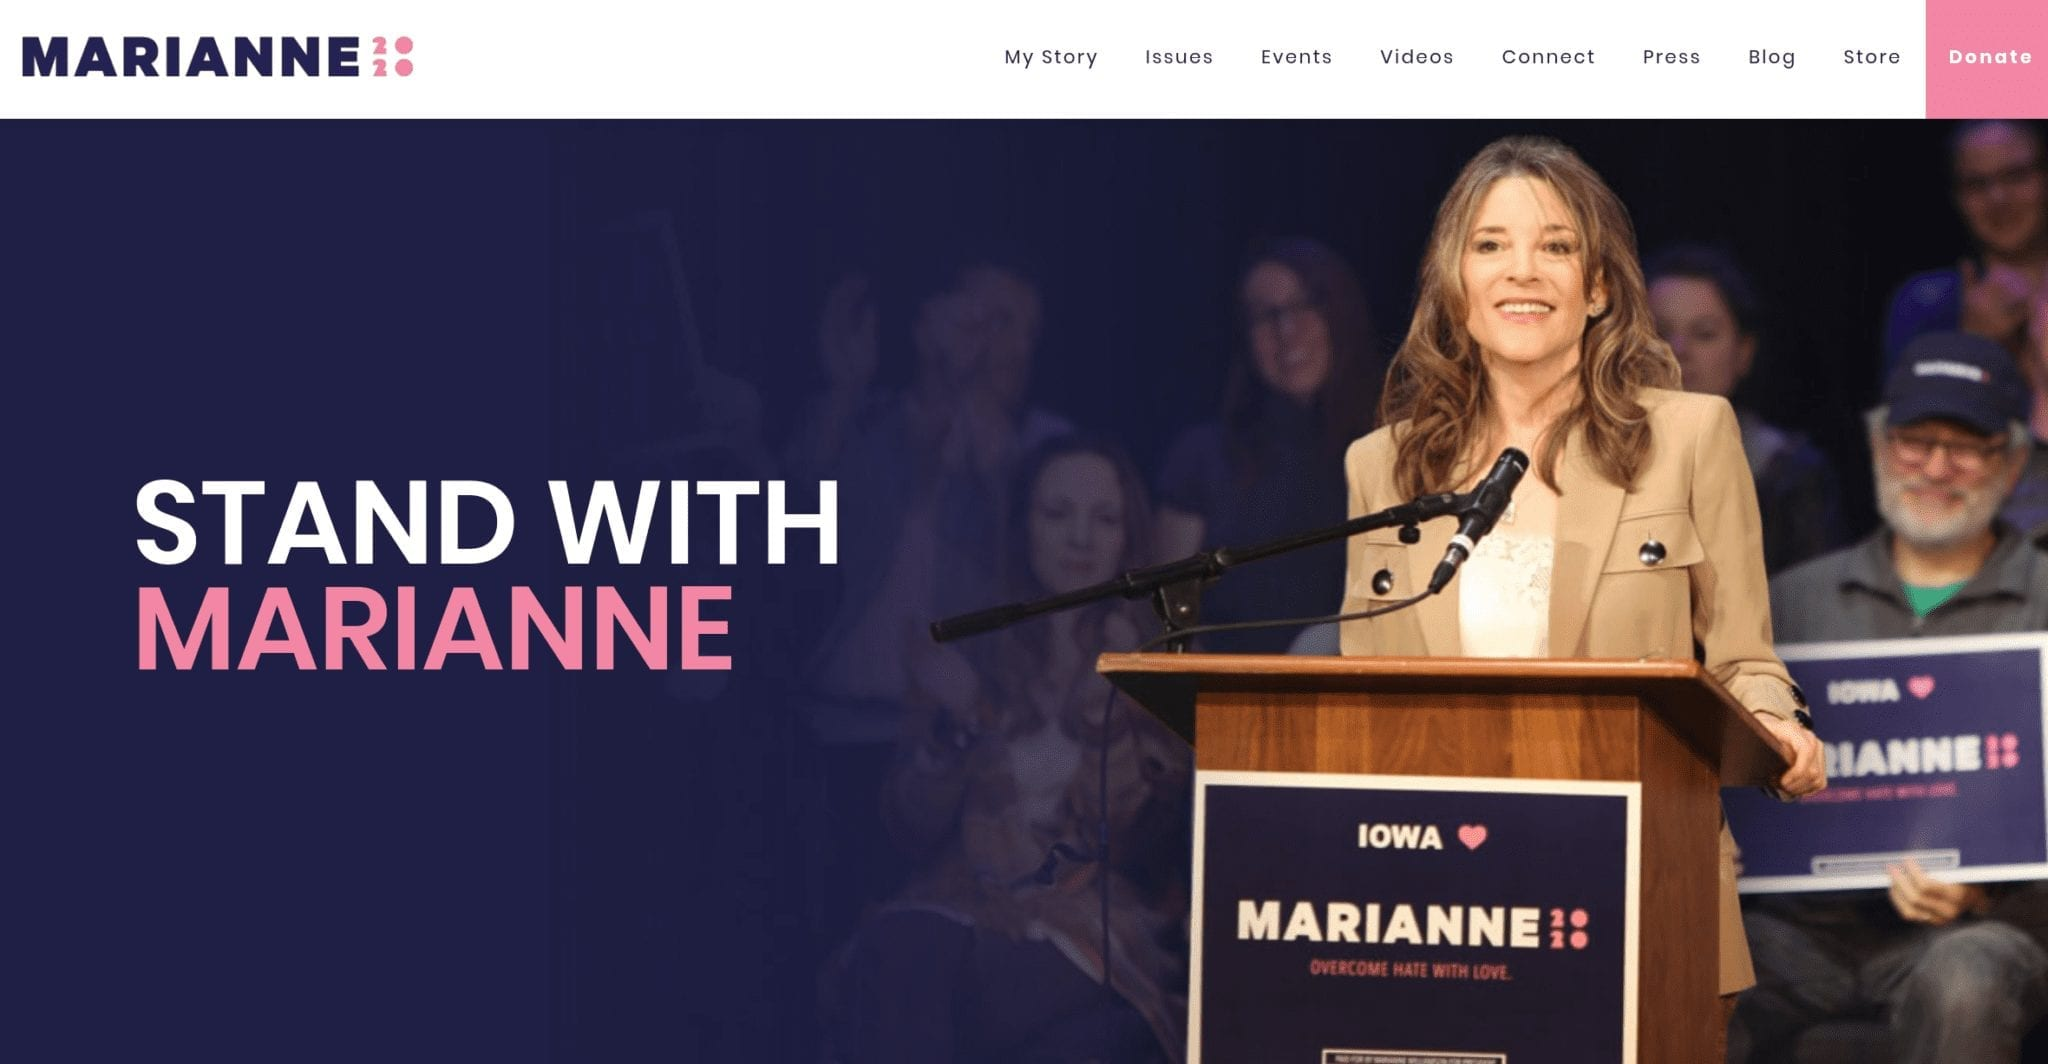 Marianne Williamson 2020 campaign website